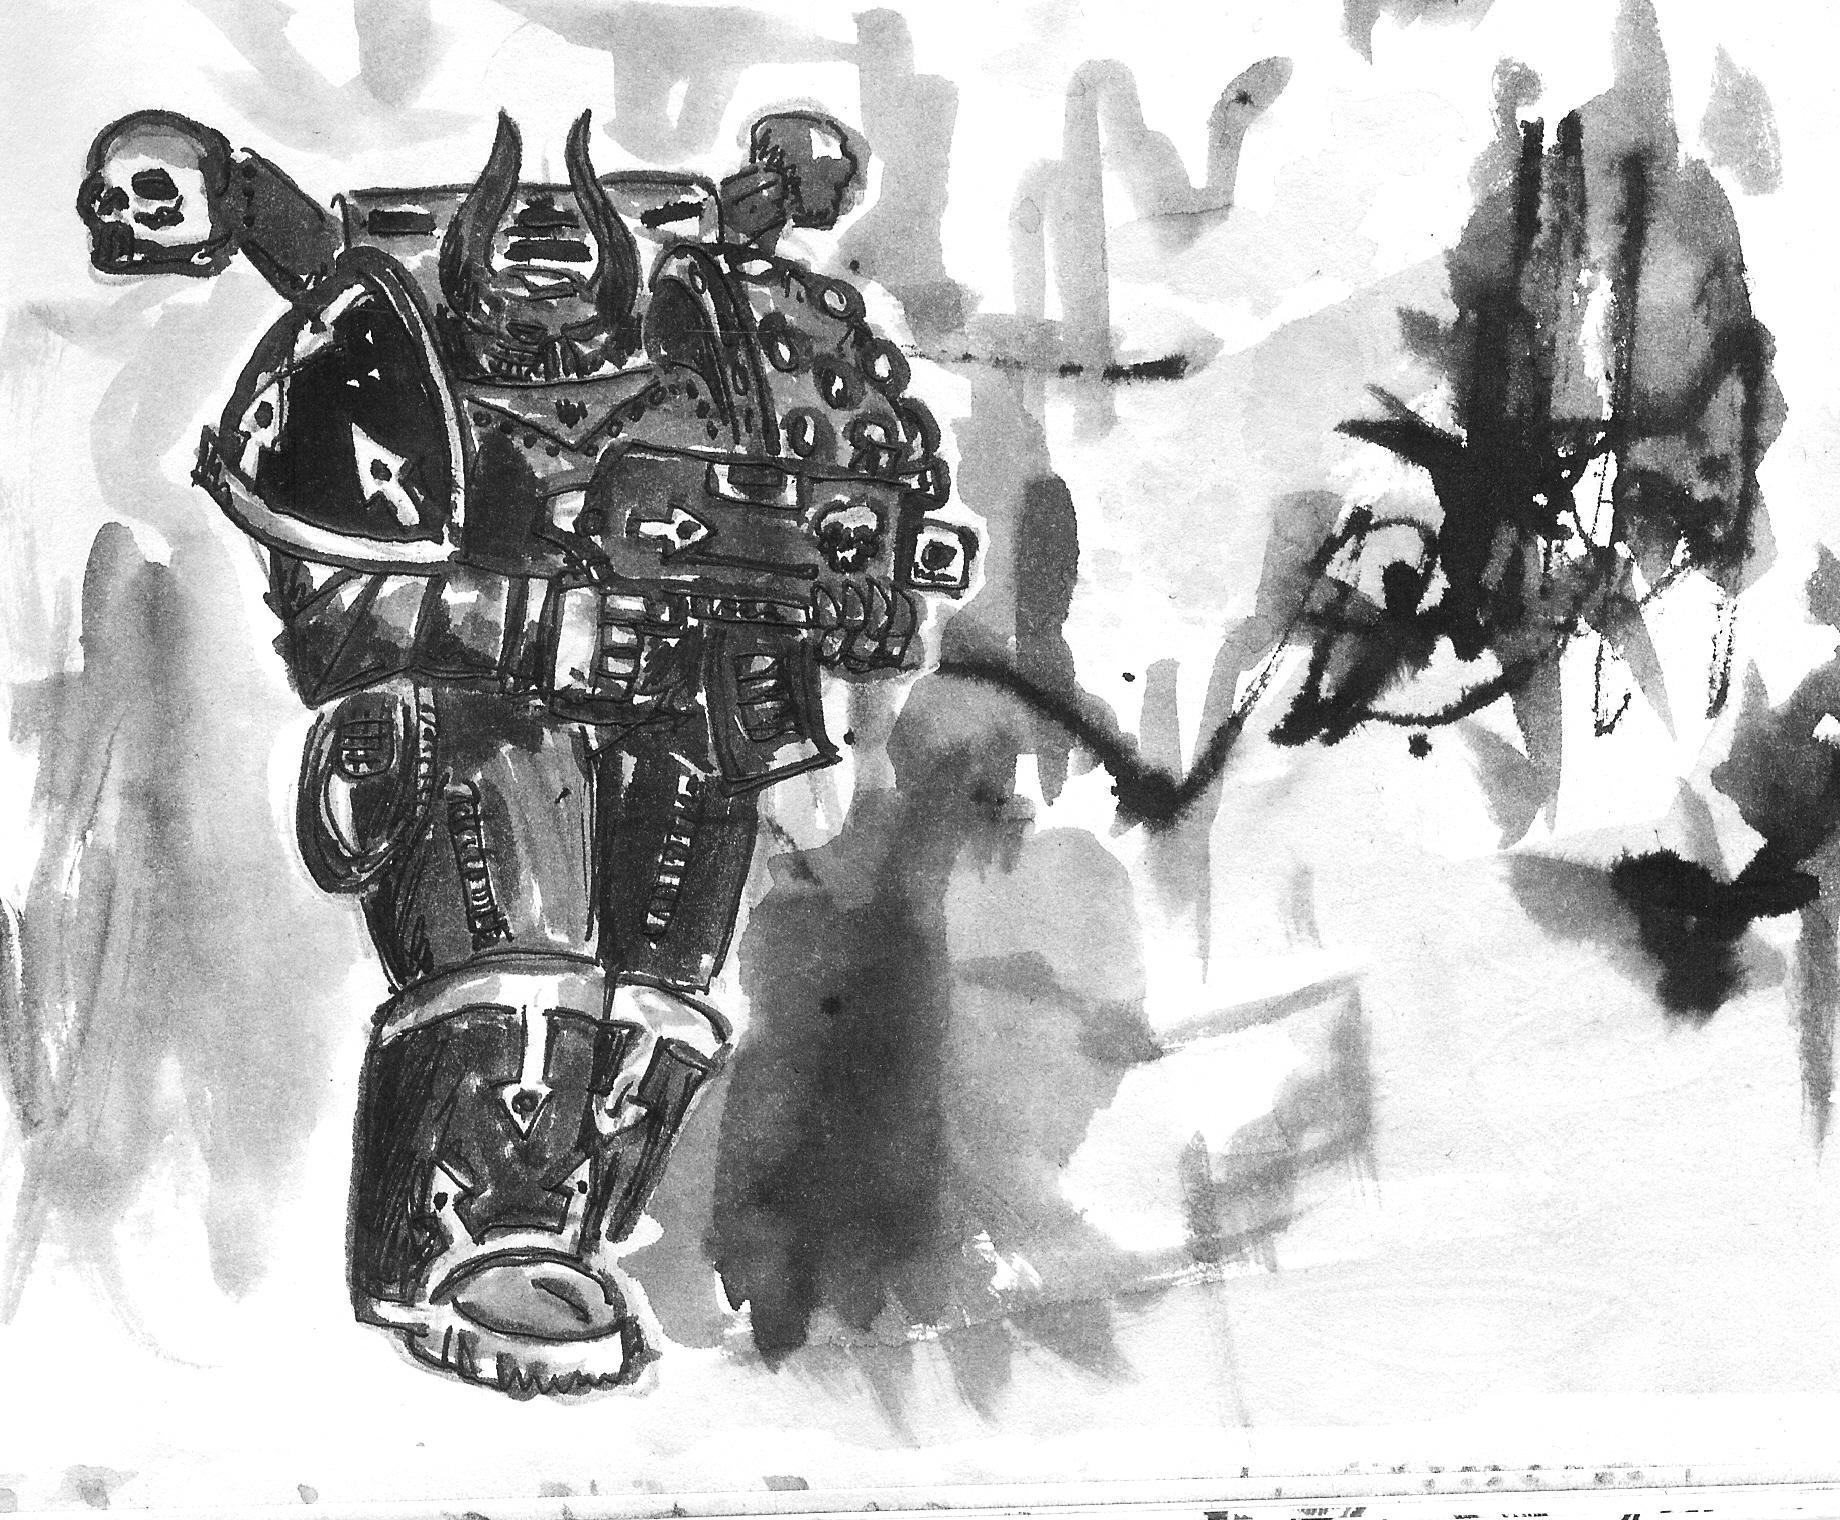 Artwork, Chaos, Chaos Space Marines, Drawing, Old, School, Style, Warhammer 40,000, Weapon